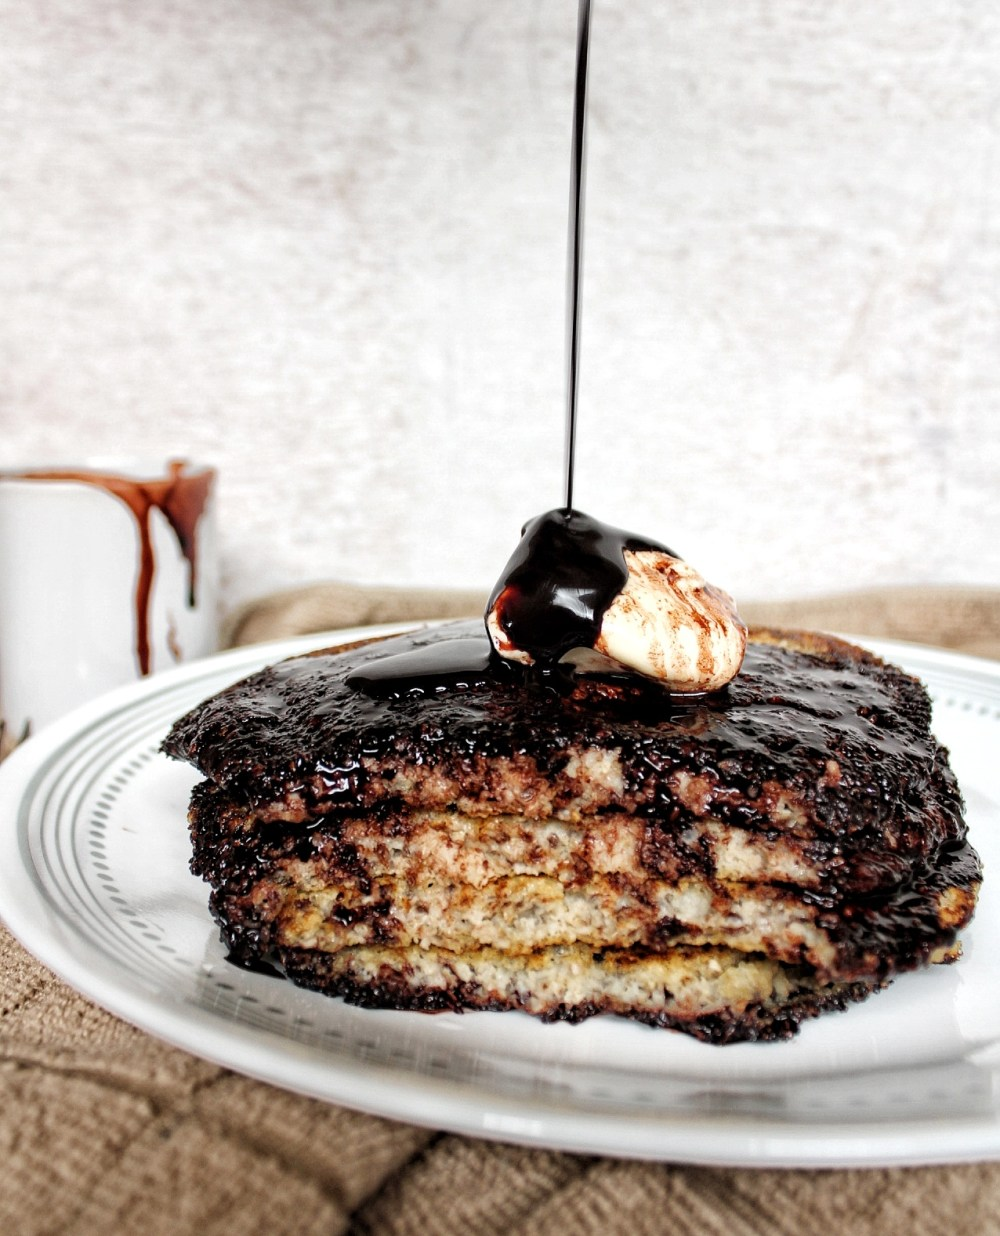 Oat bran pancakes with chocolate syrup